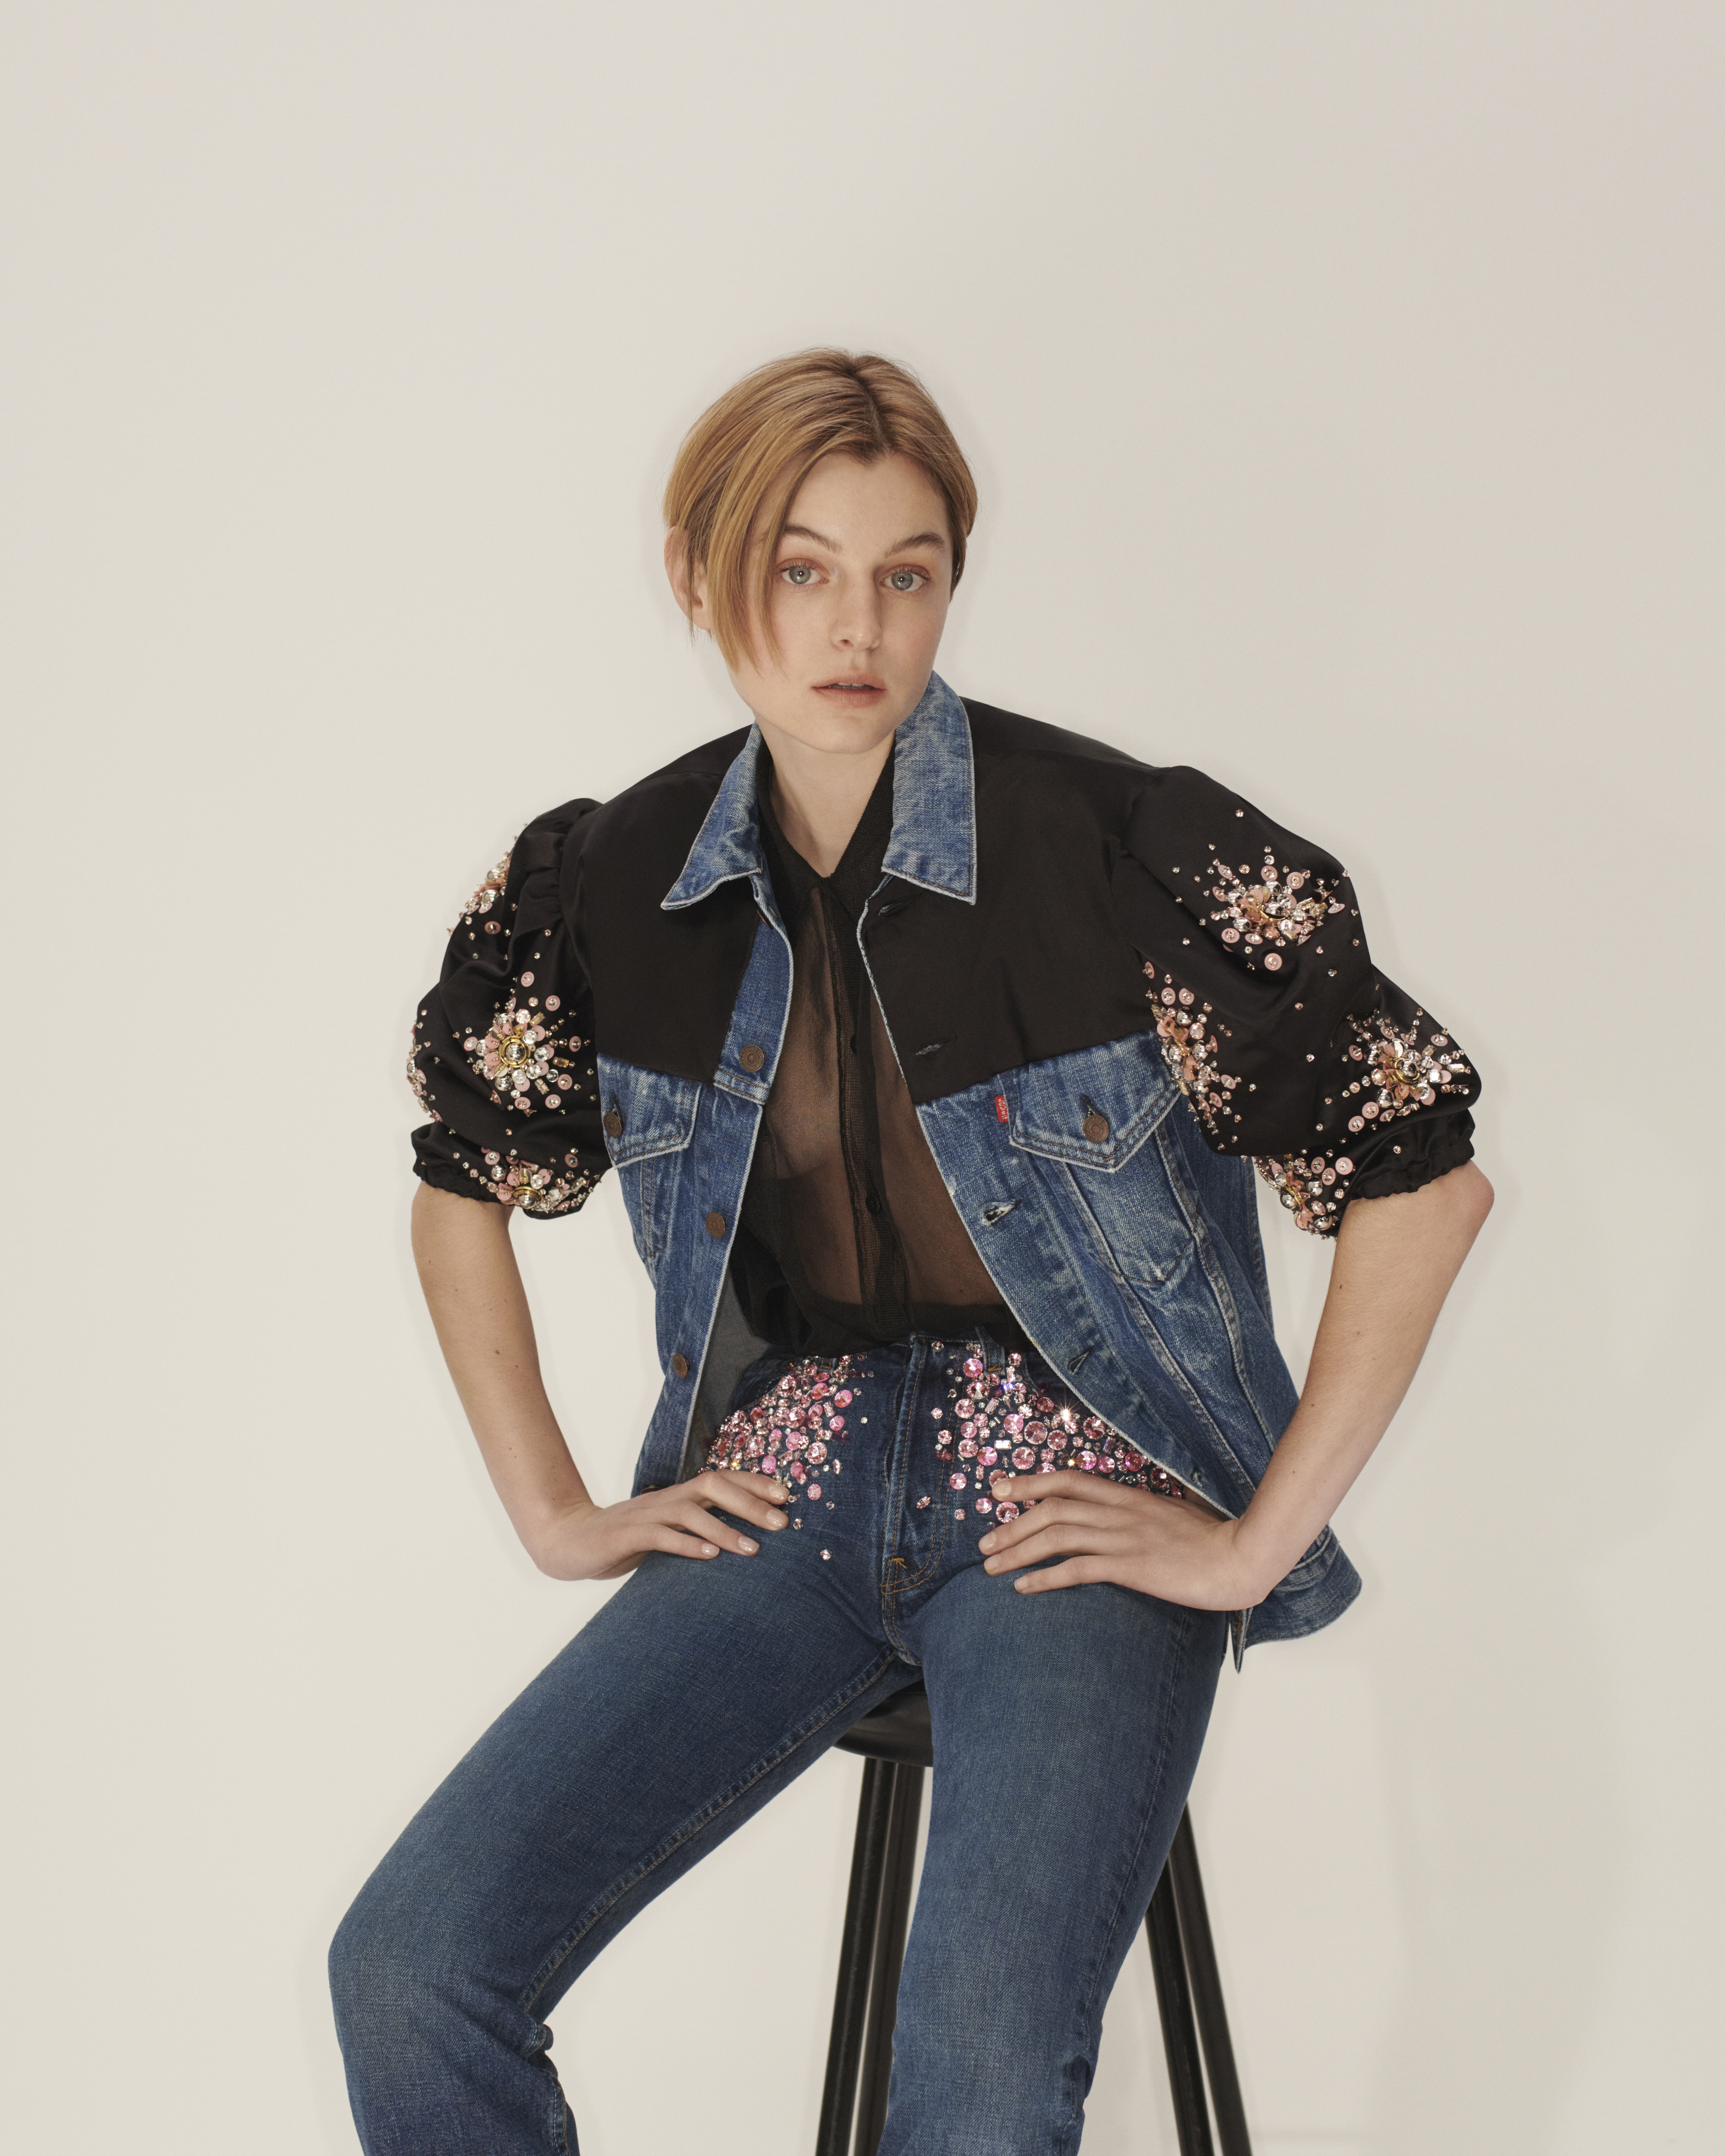 Emma Corrin for Upcycled by Miu Miu in collaboration with Levi's